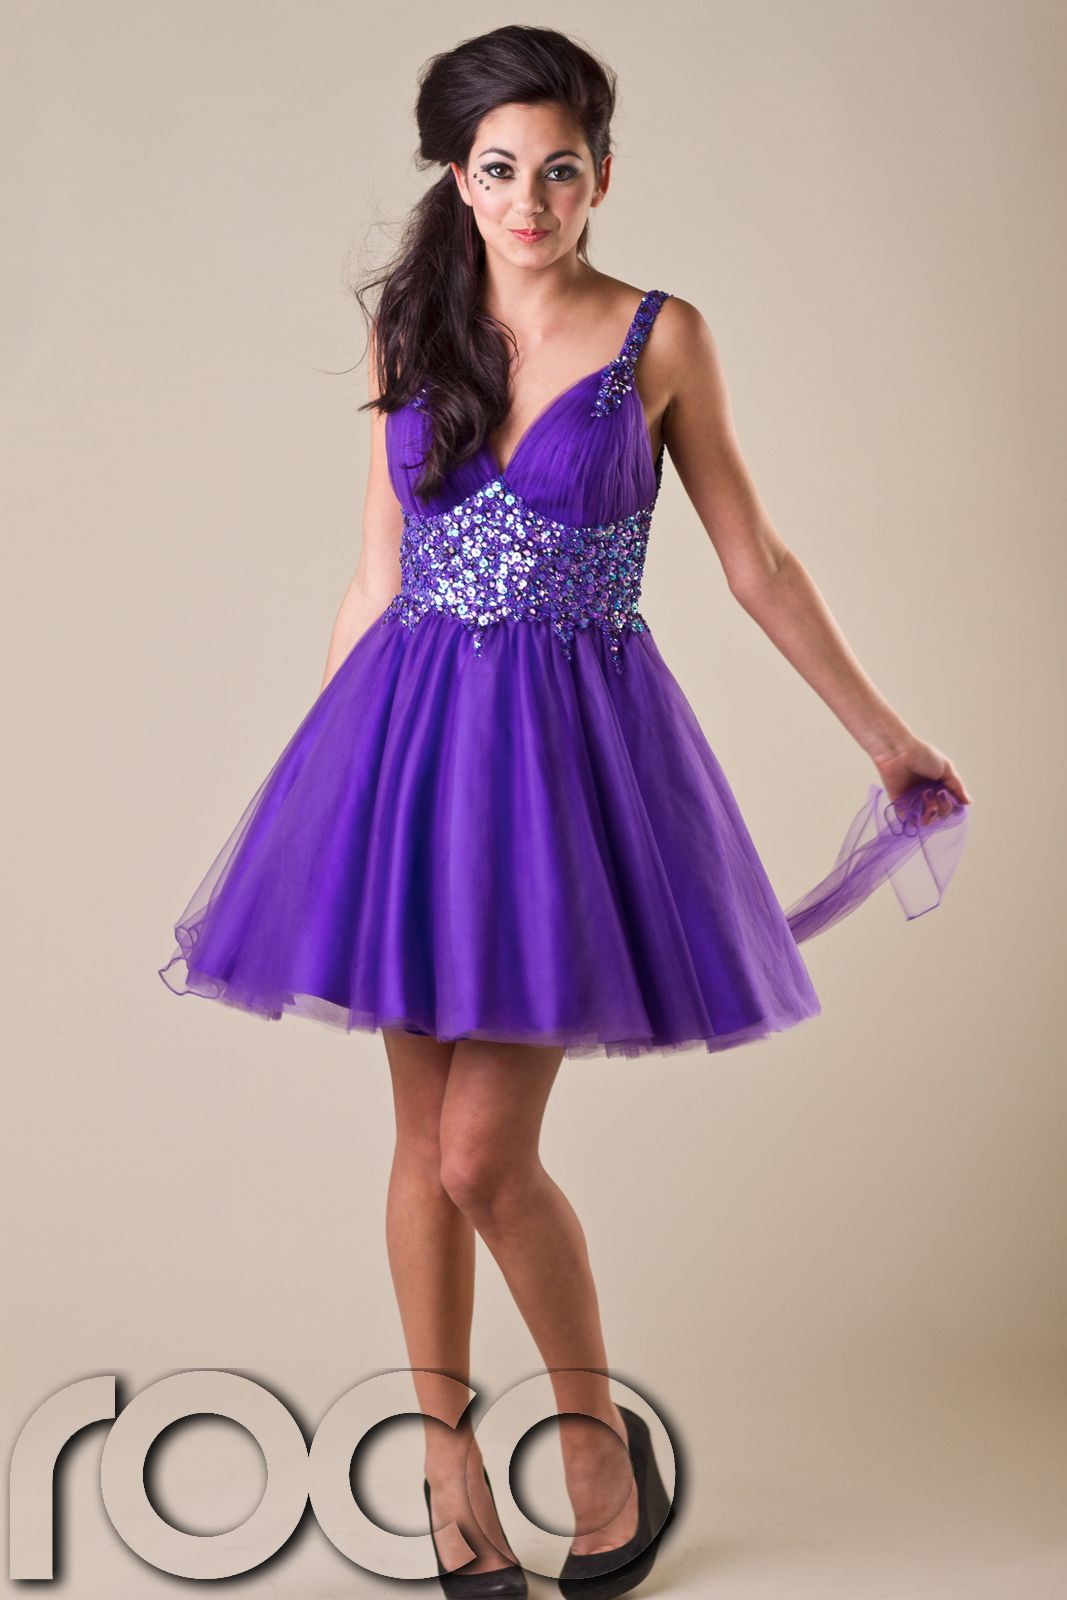 Details about Girls Purple Prom Dresses Girls Designer Prom ...